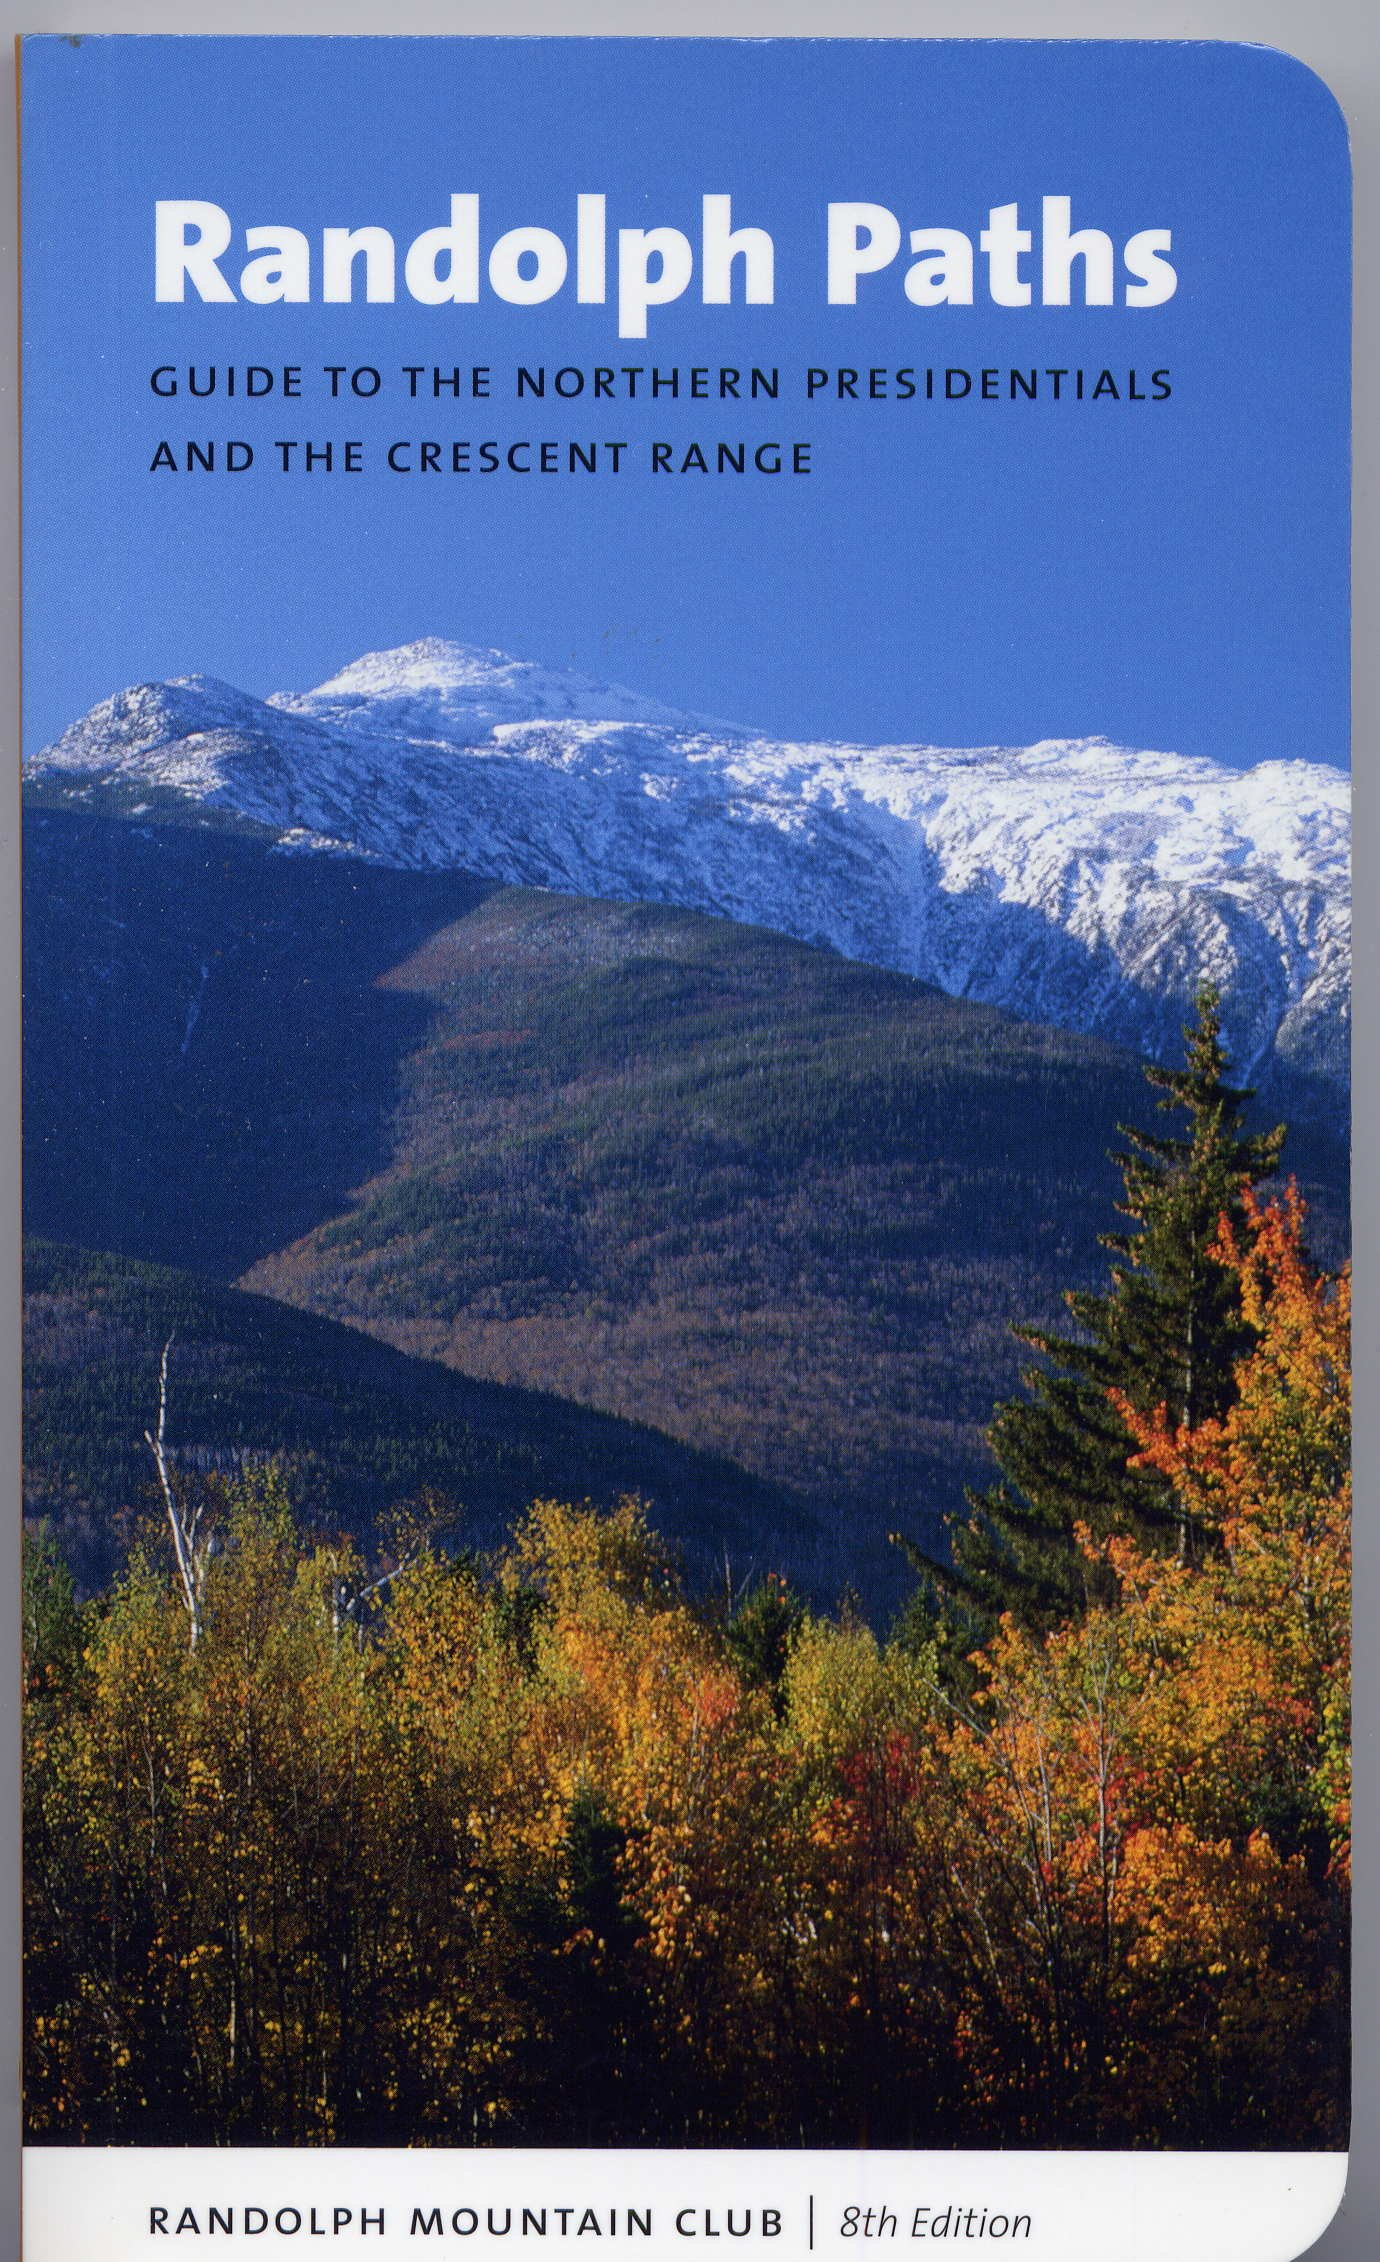 Randolph Paths Guide to the Northern Presidentials and the Crescent Range PDF